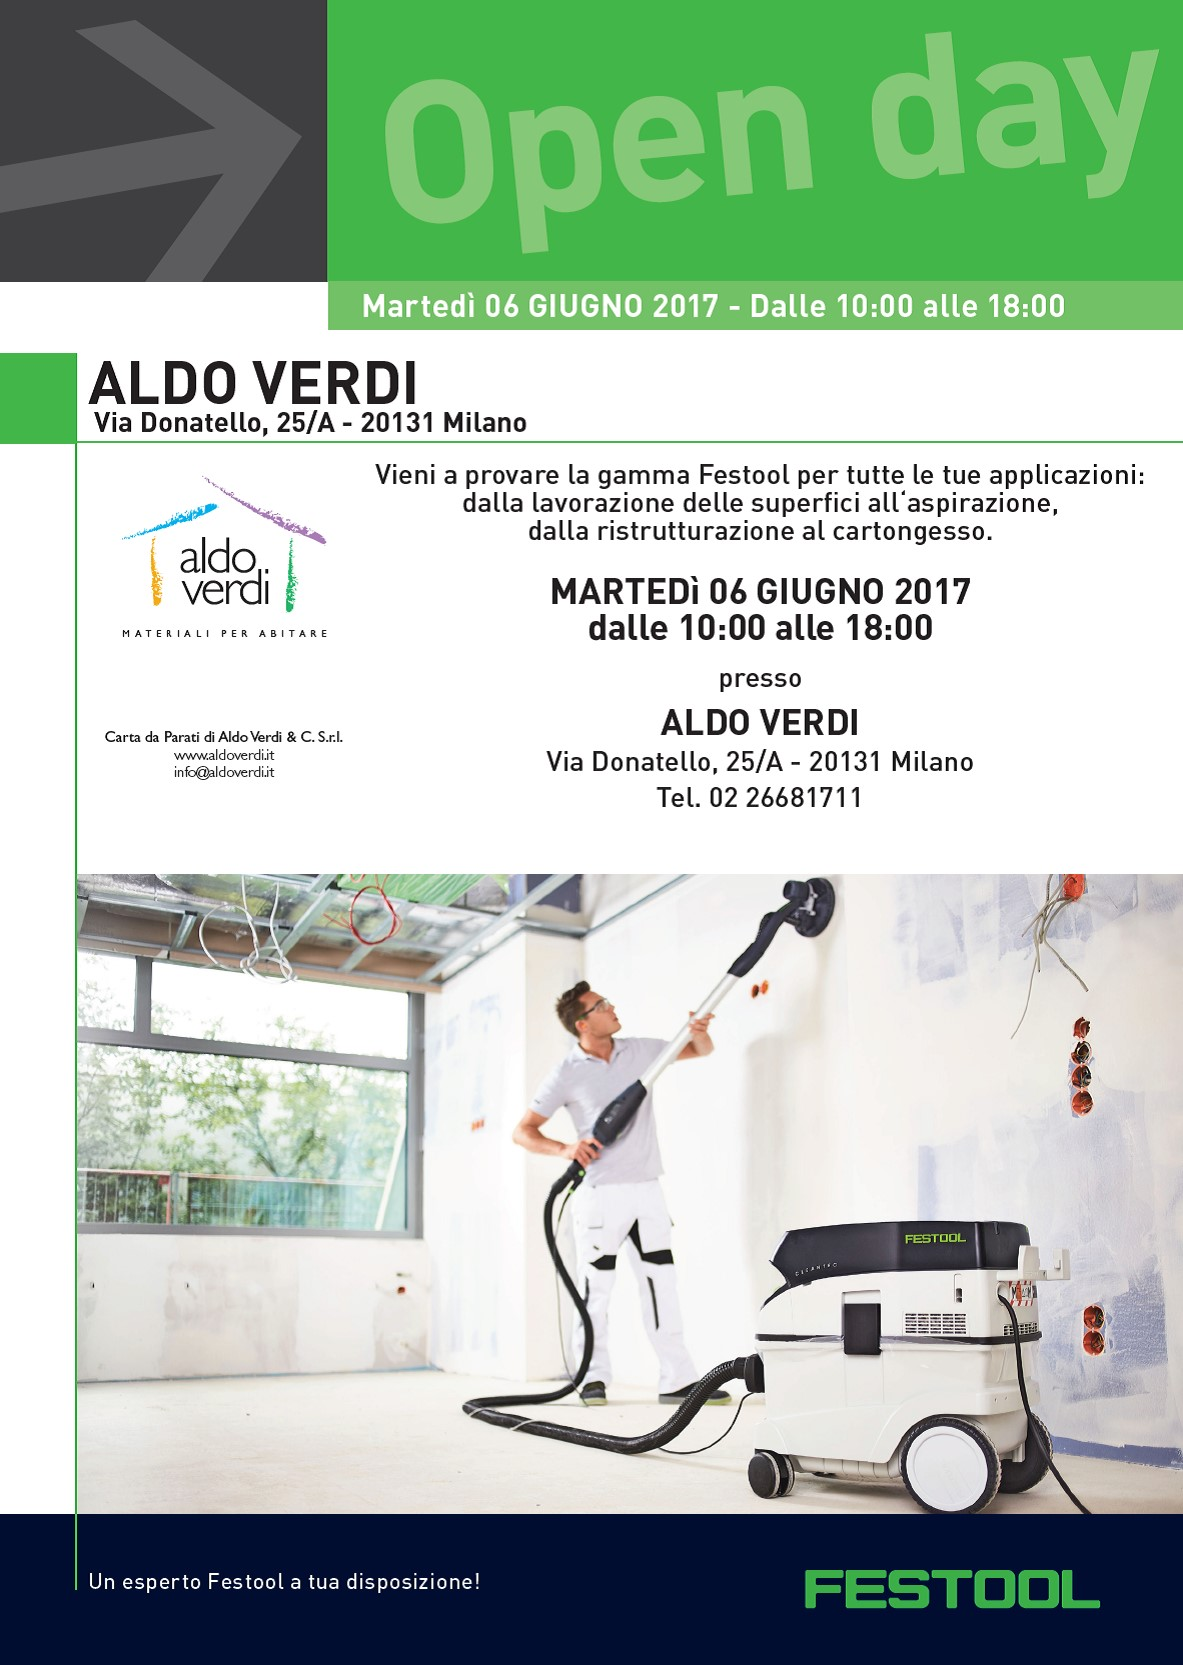 Open day Festool da Aldoverdi